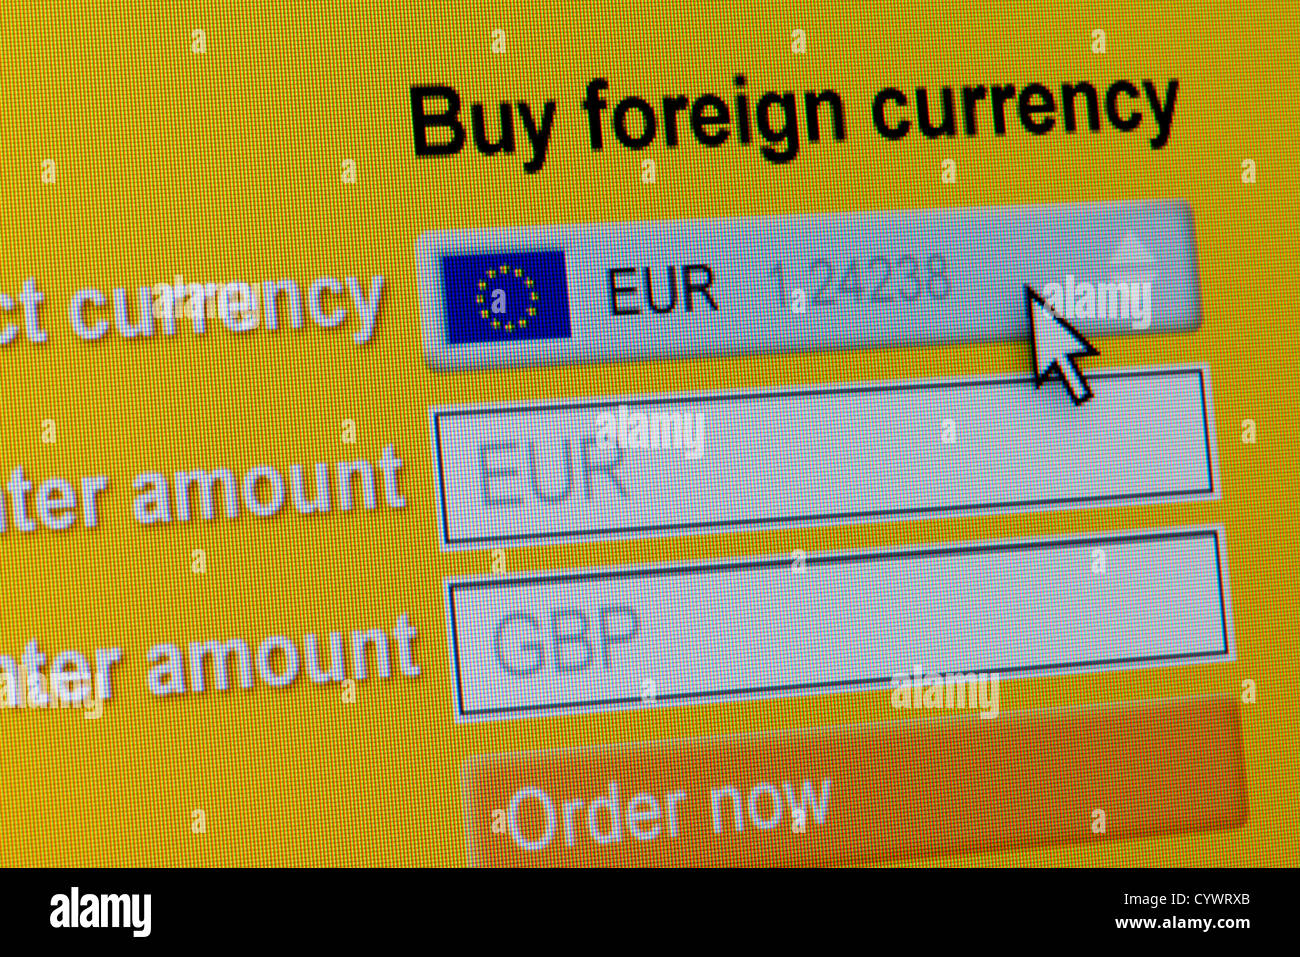 Close up of a fictional website inviting users to buy foreign currency, in this instance Euros. - Stock Image